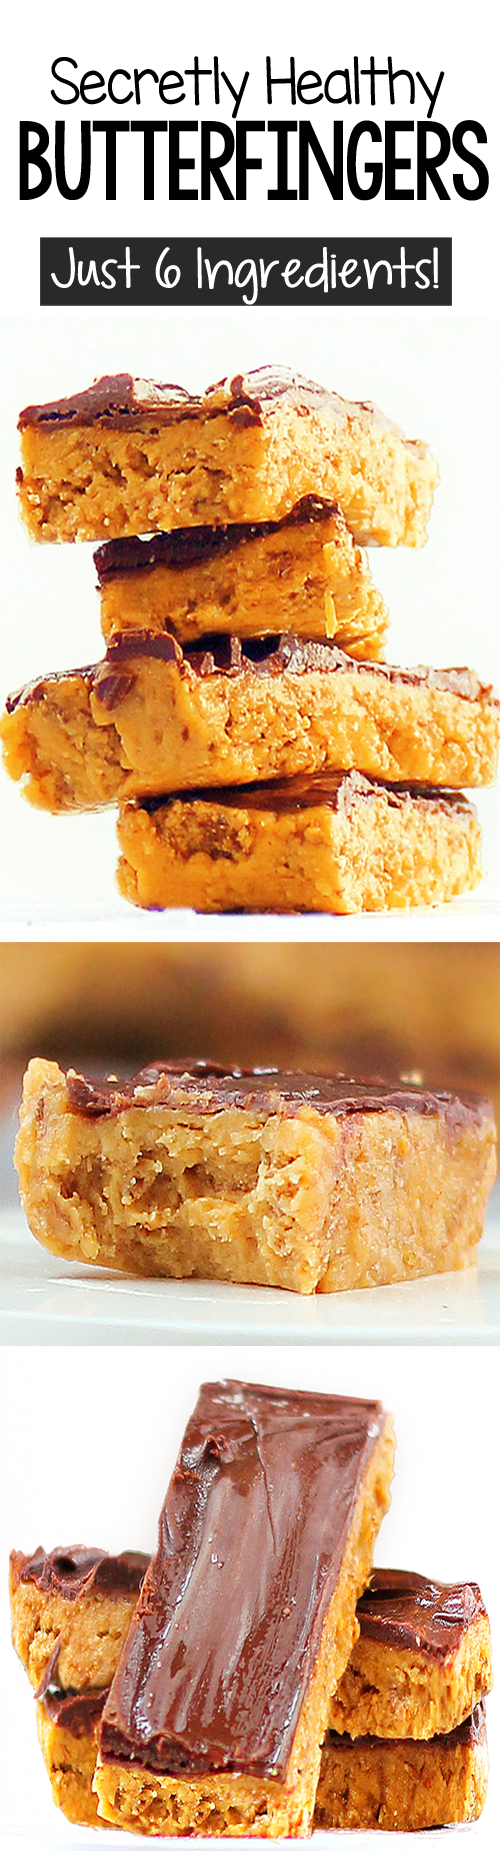 Secretly Healthy Butterfinger Bars (Vegan, Easy, Homemade Candy Bars)